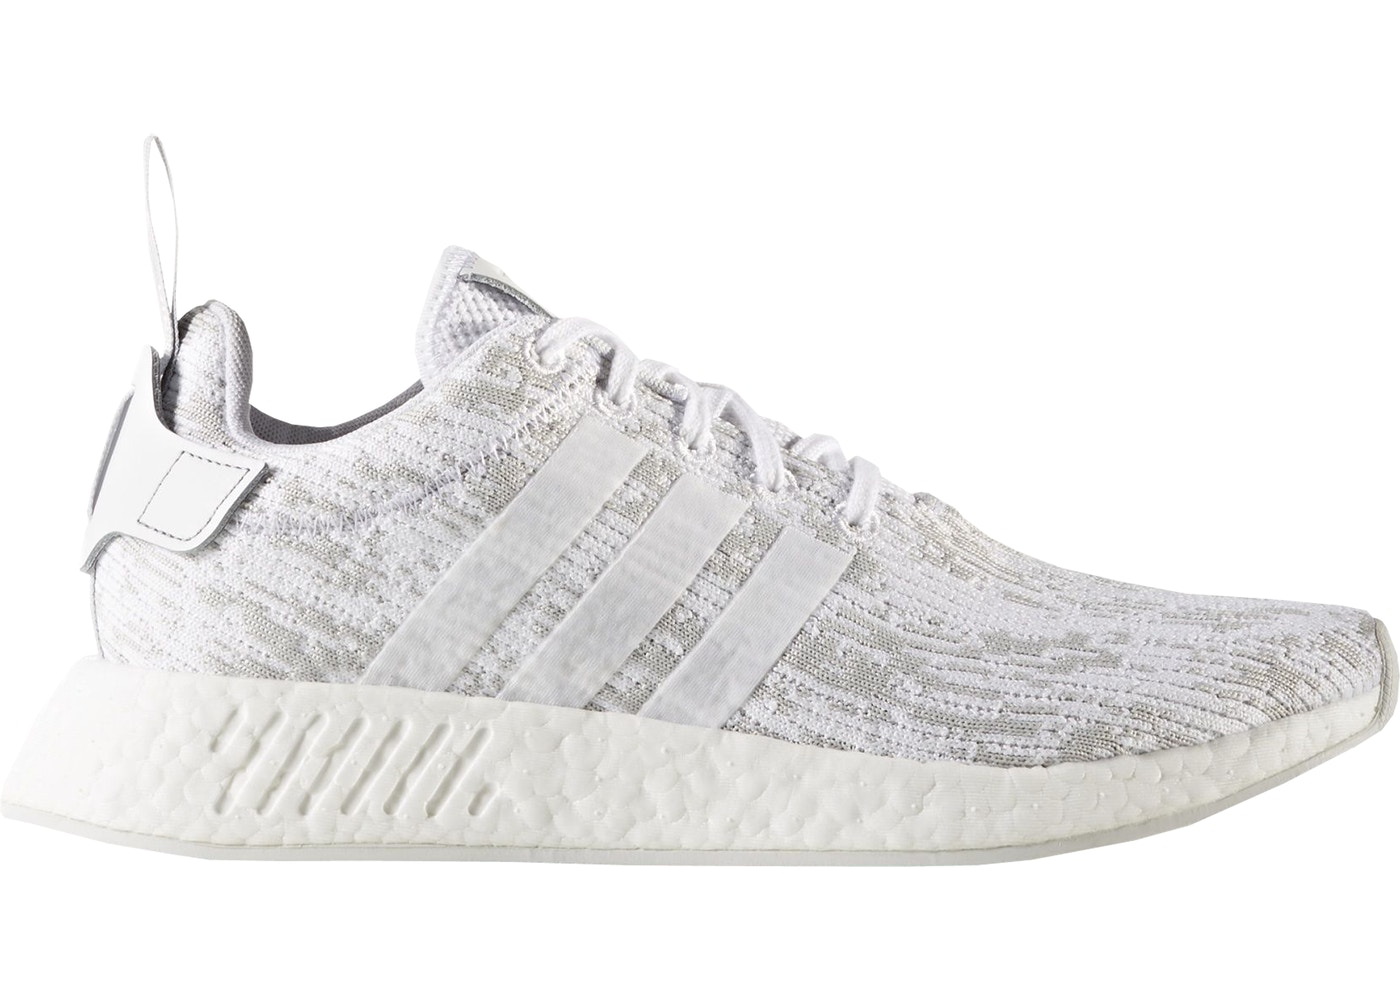 60a7093705a3d adidas NMD R2 Clear Granite (W) - BY8691